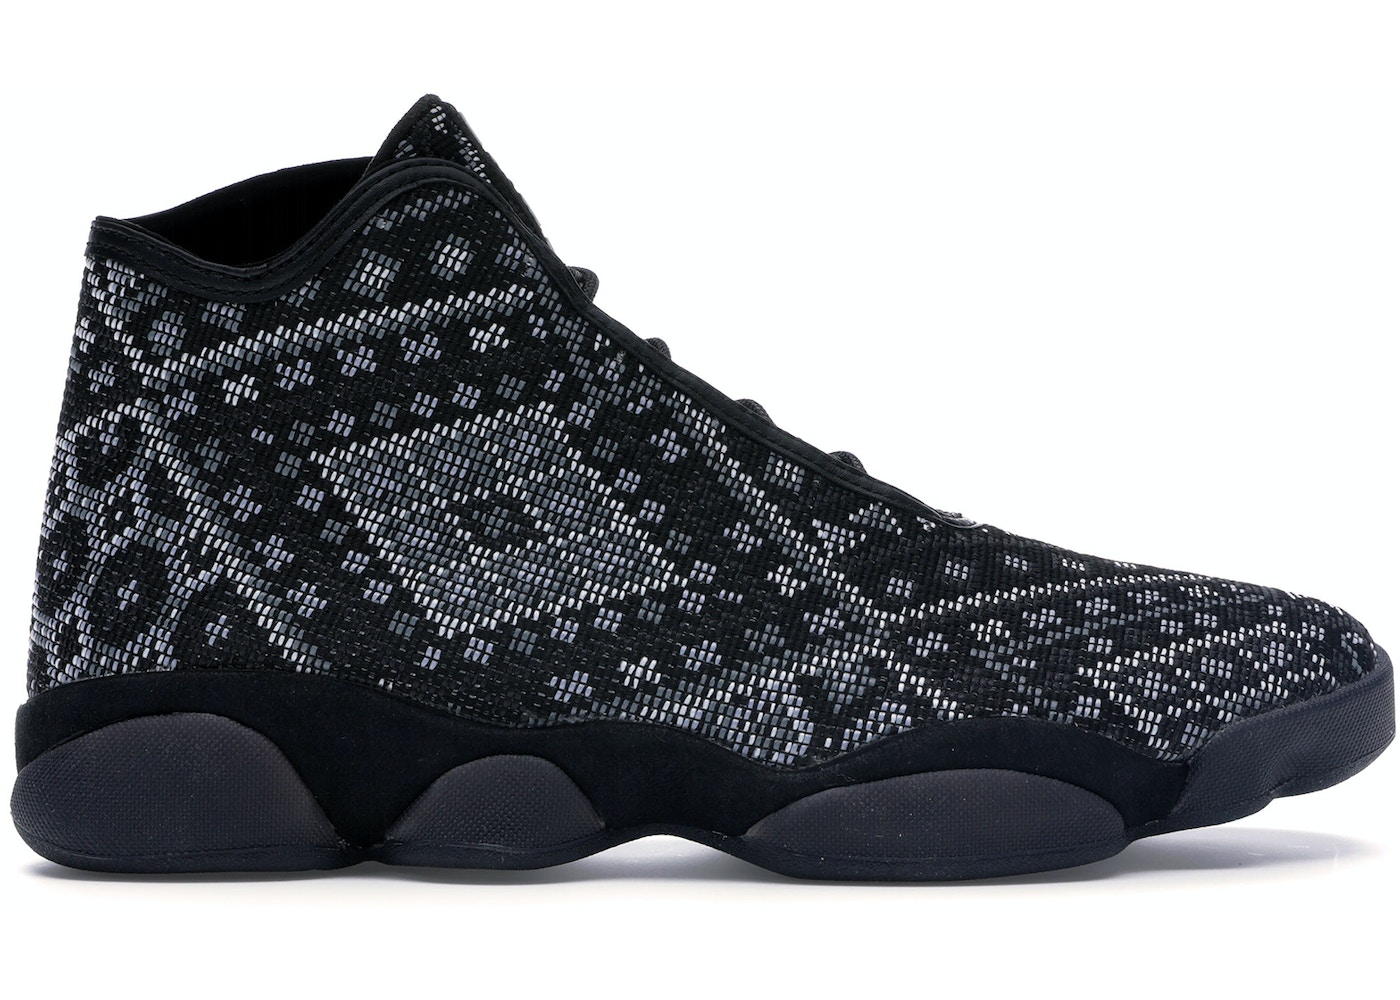 wholesale dealer 0991d 9df34 Jordan Horizon PSNY - 827432-002